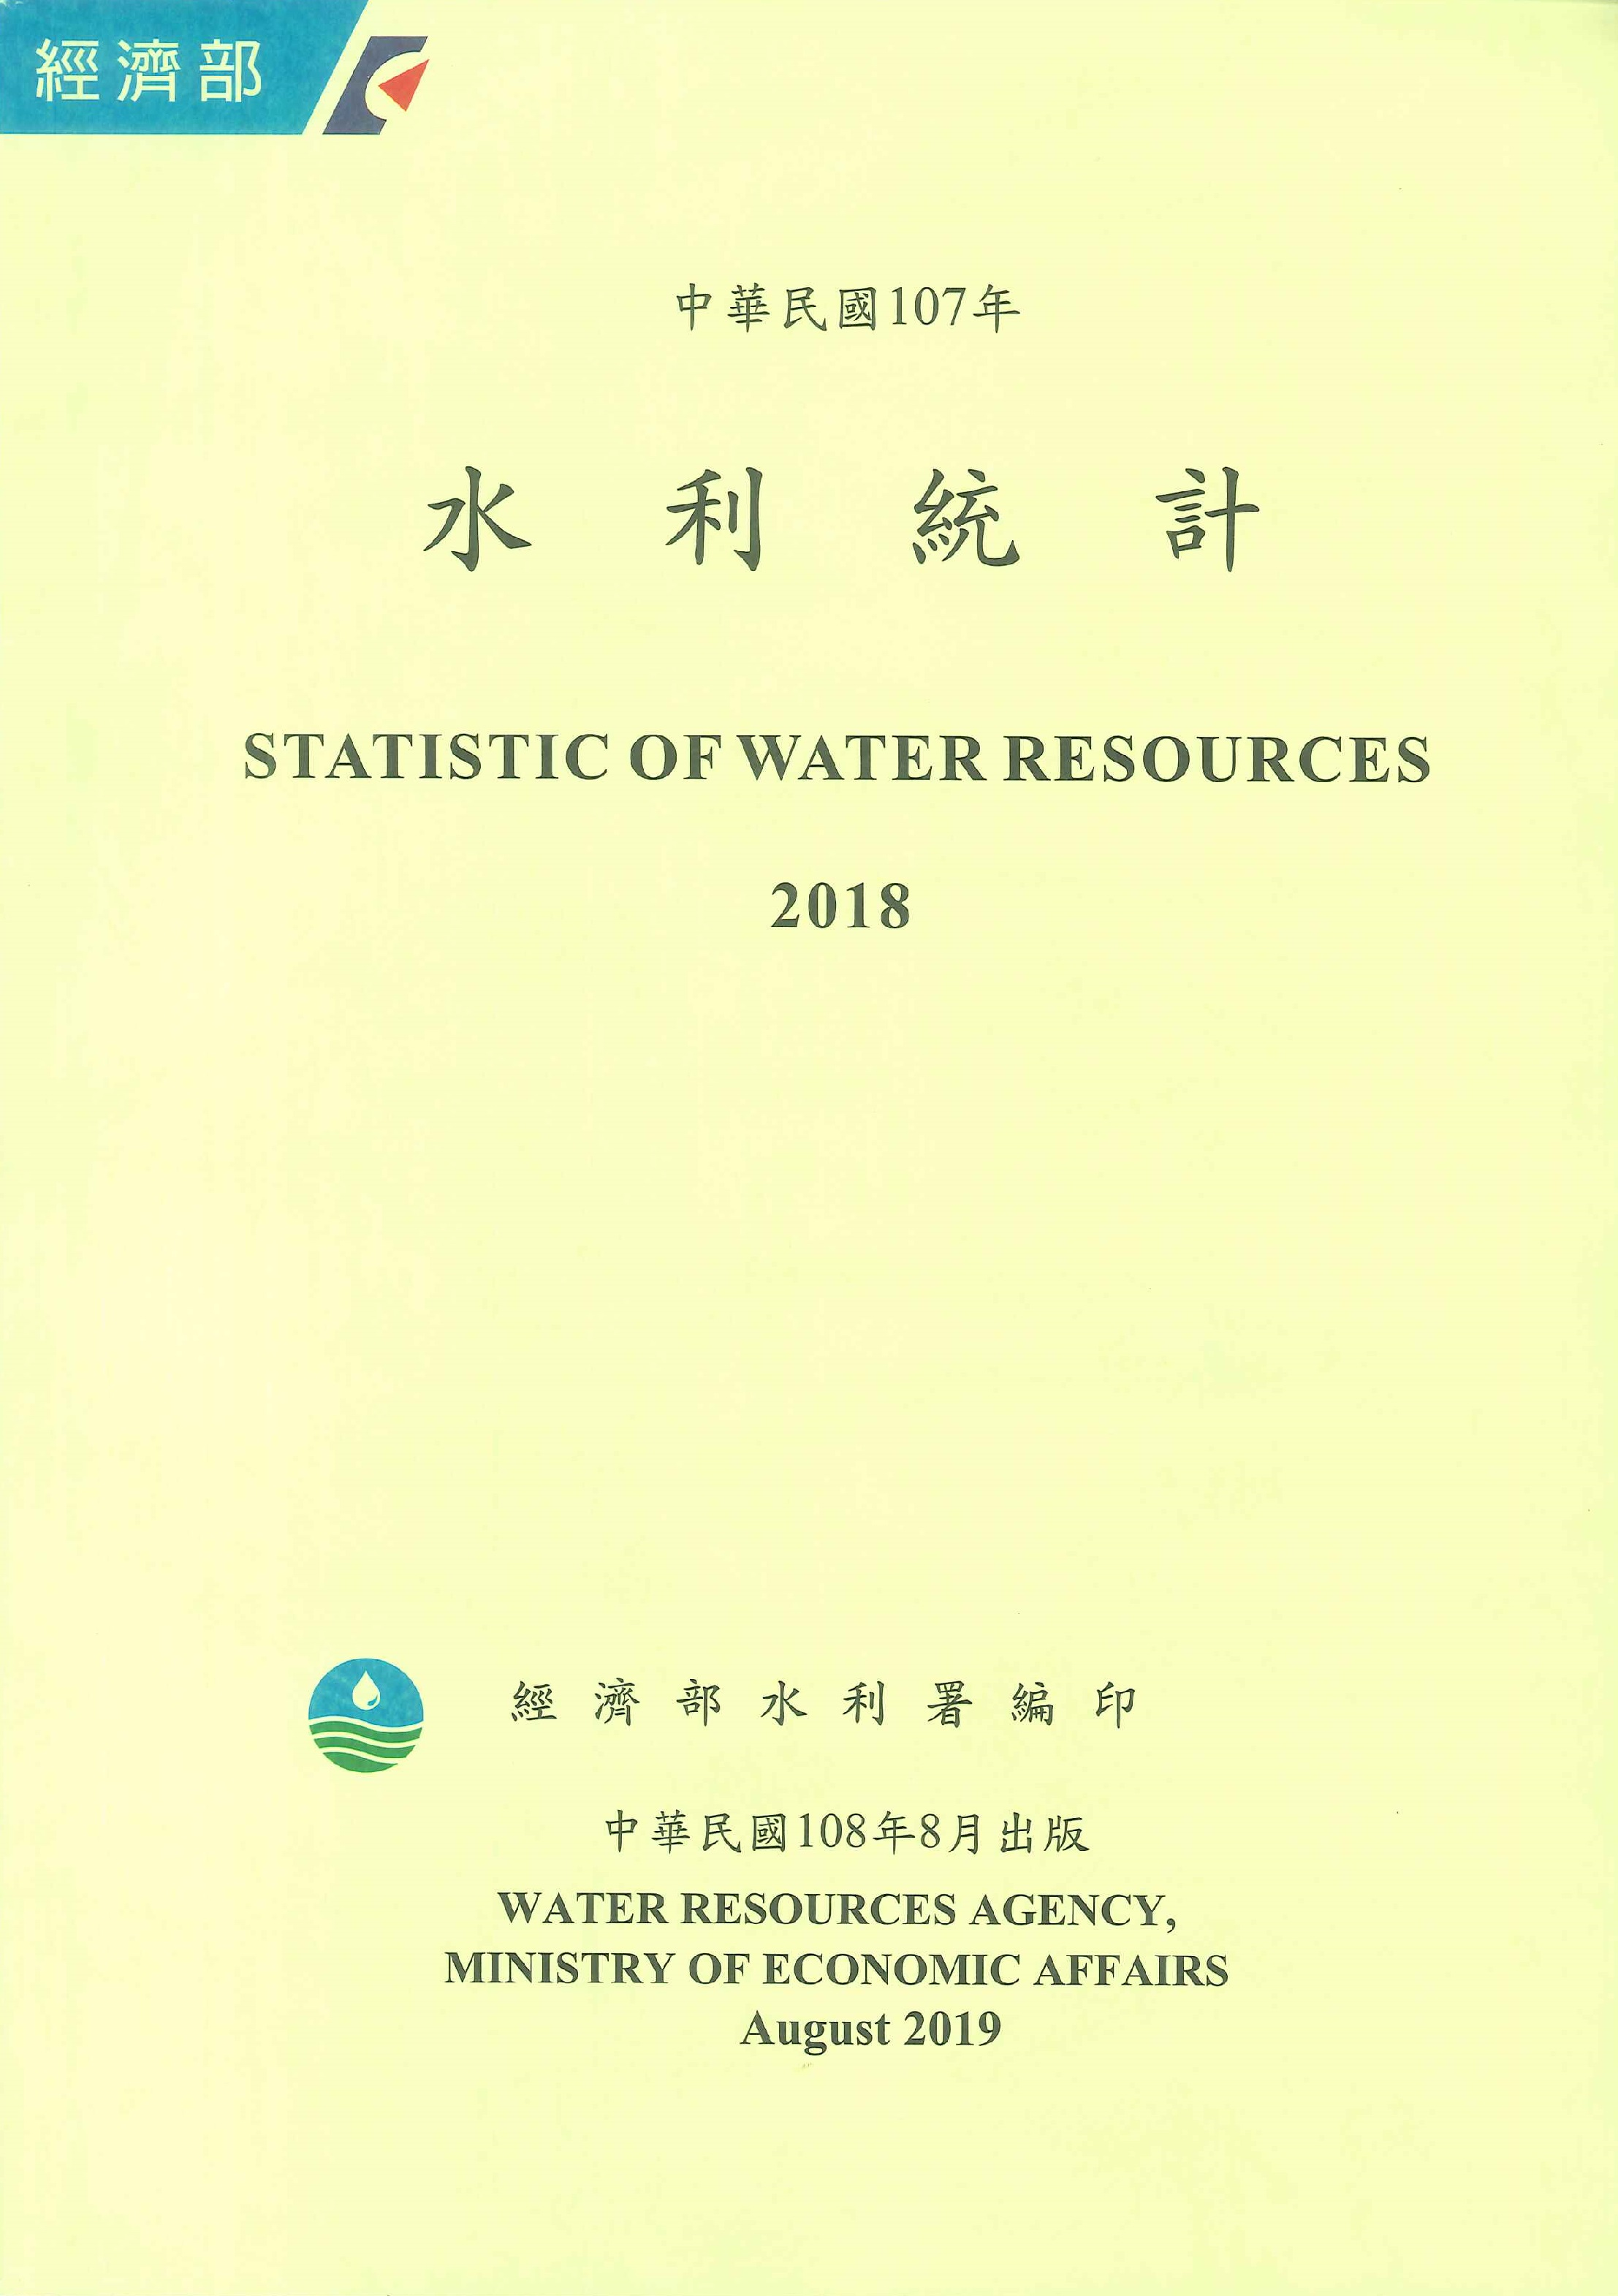 水利統計=Statistic of water resources